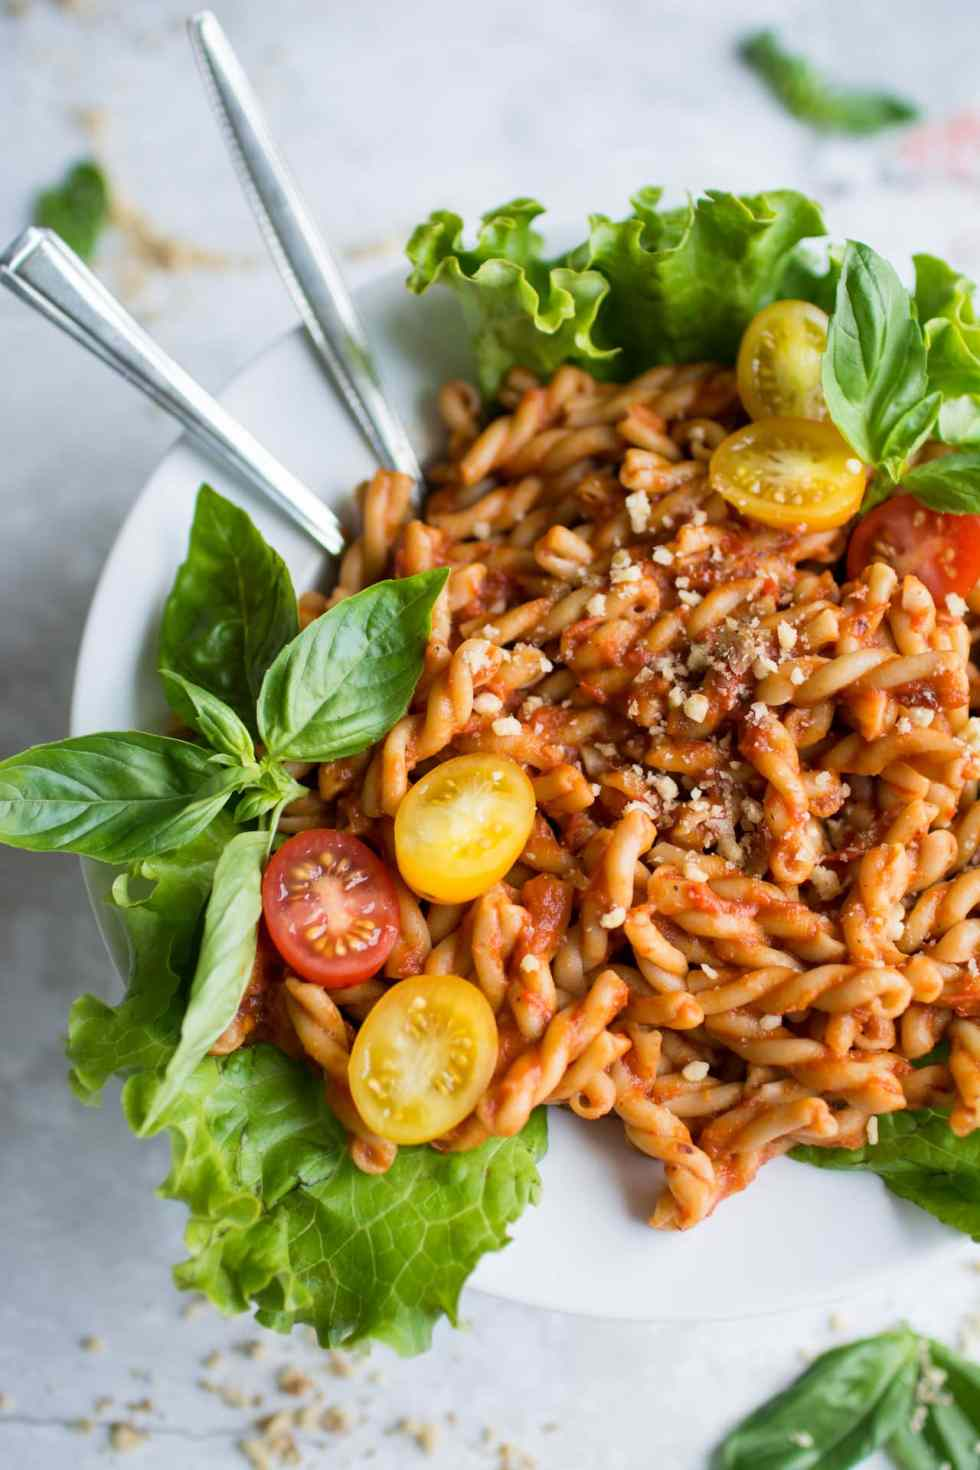 Bell Pepper Recipes: Roasted Pepper and tomato Pasta